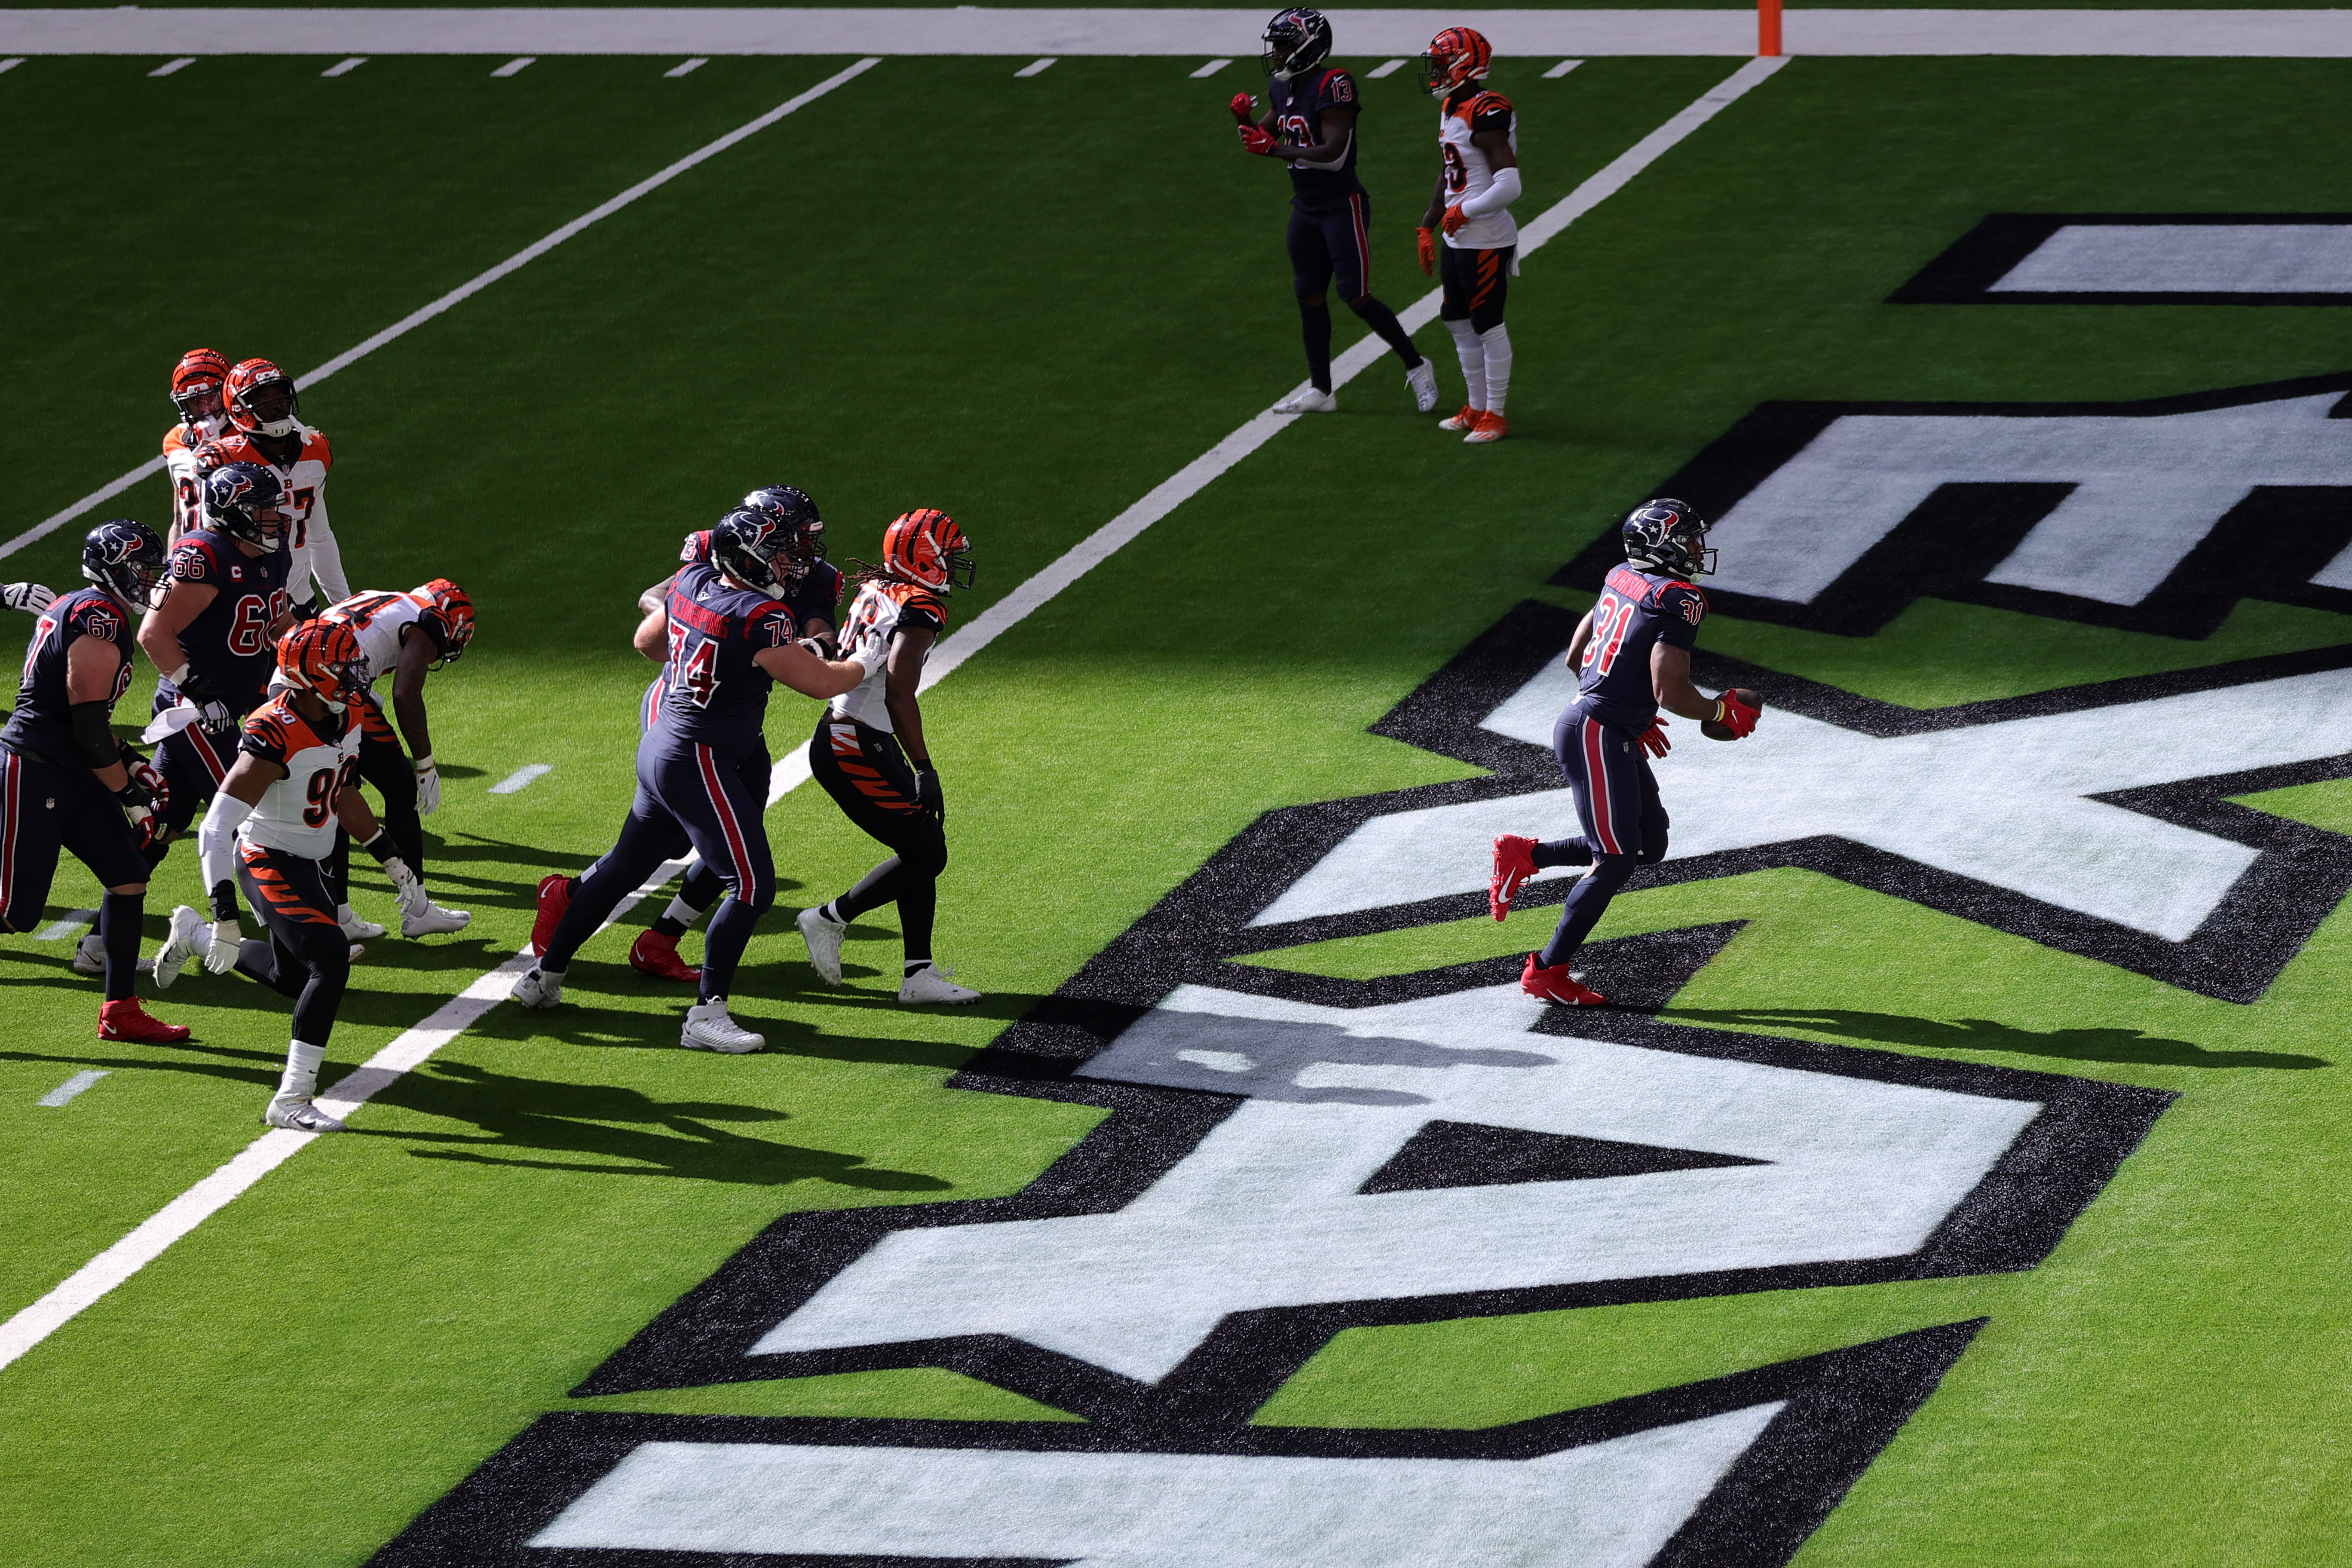 Running back David Johnson #31 of the Houston Texans rushes for a touchdown during the third quarter of the game of the game against the Cincinnati Bengals at NRG Stadium on December 27, 2020 in Houston, Texas.